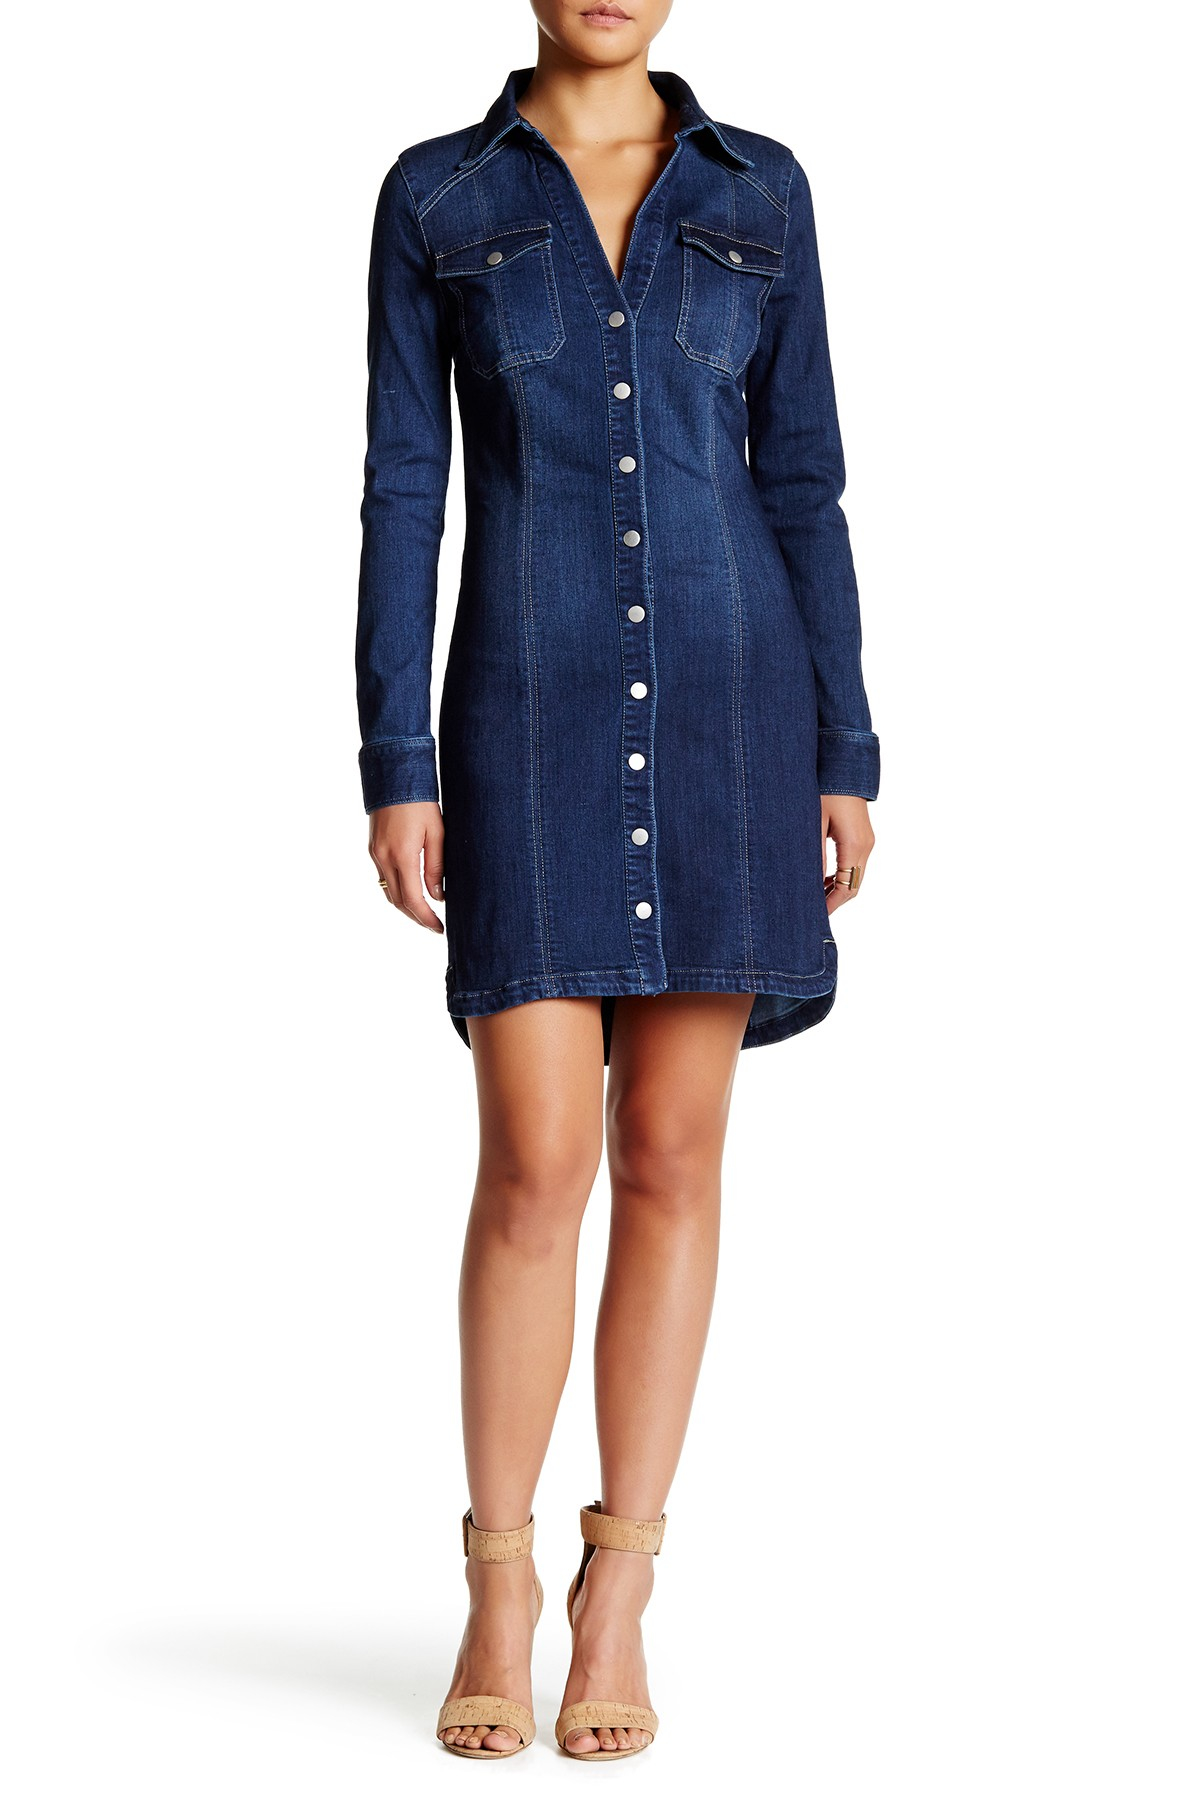 Alexia Admor Long Sleeve Denim Shirt Dress In Blue | Lyst